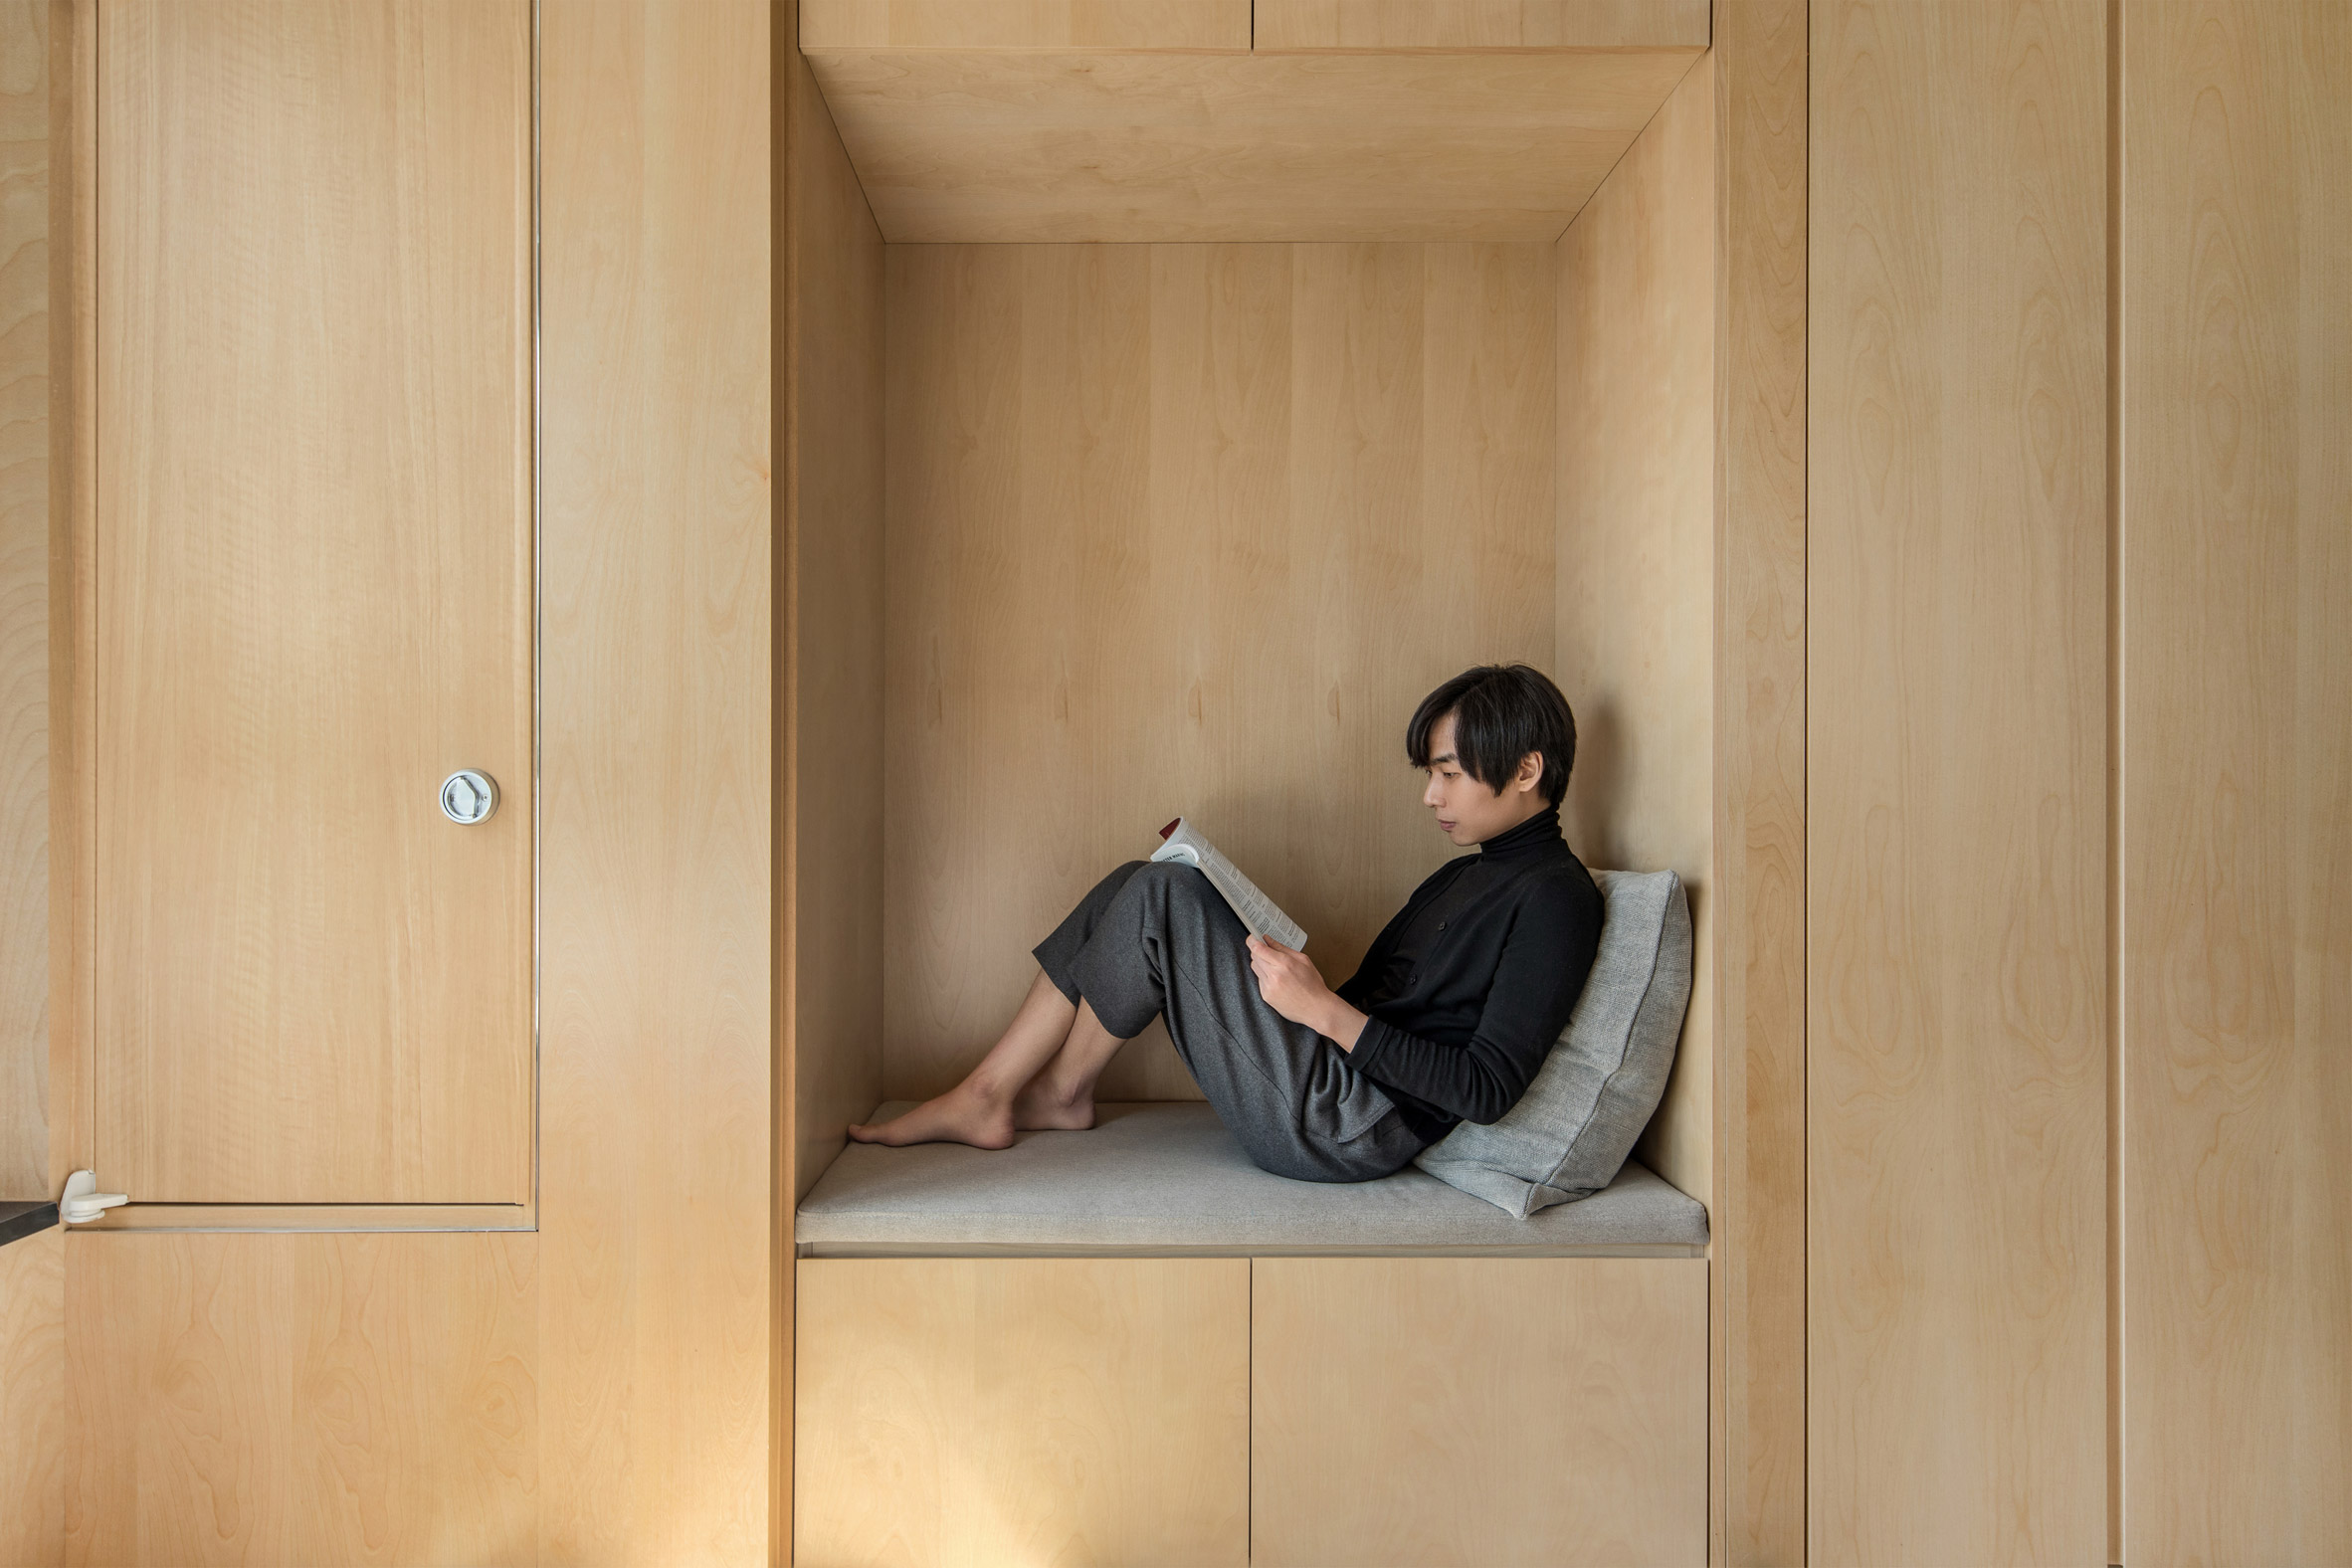 A reading nook inside a LIFE micro-apartment by Ian Lee